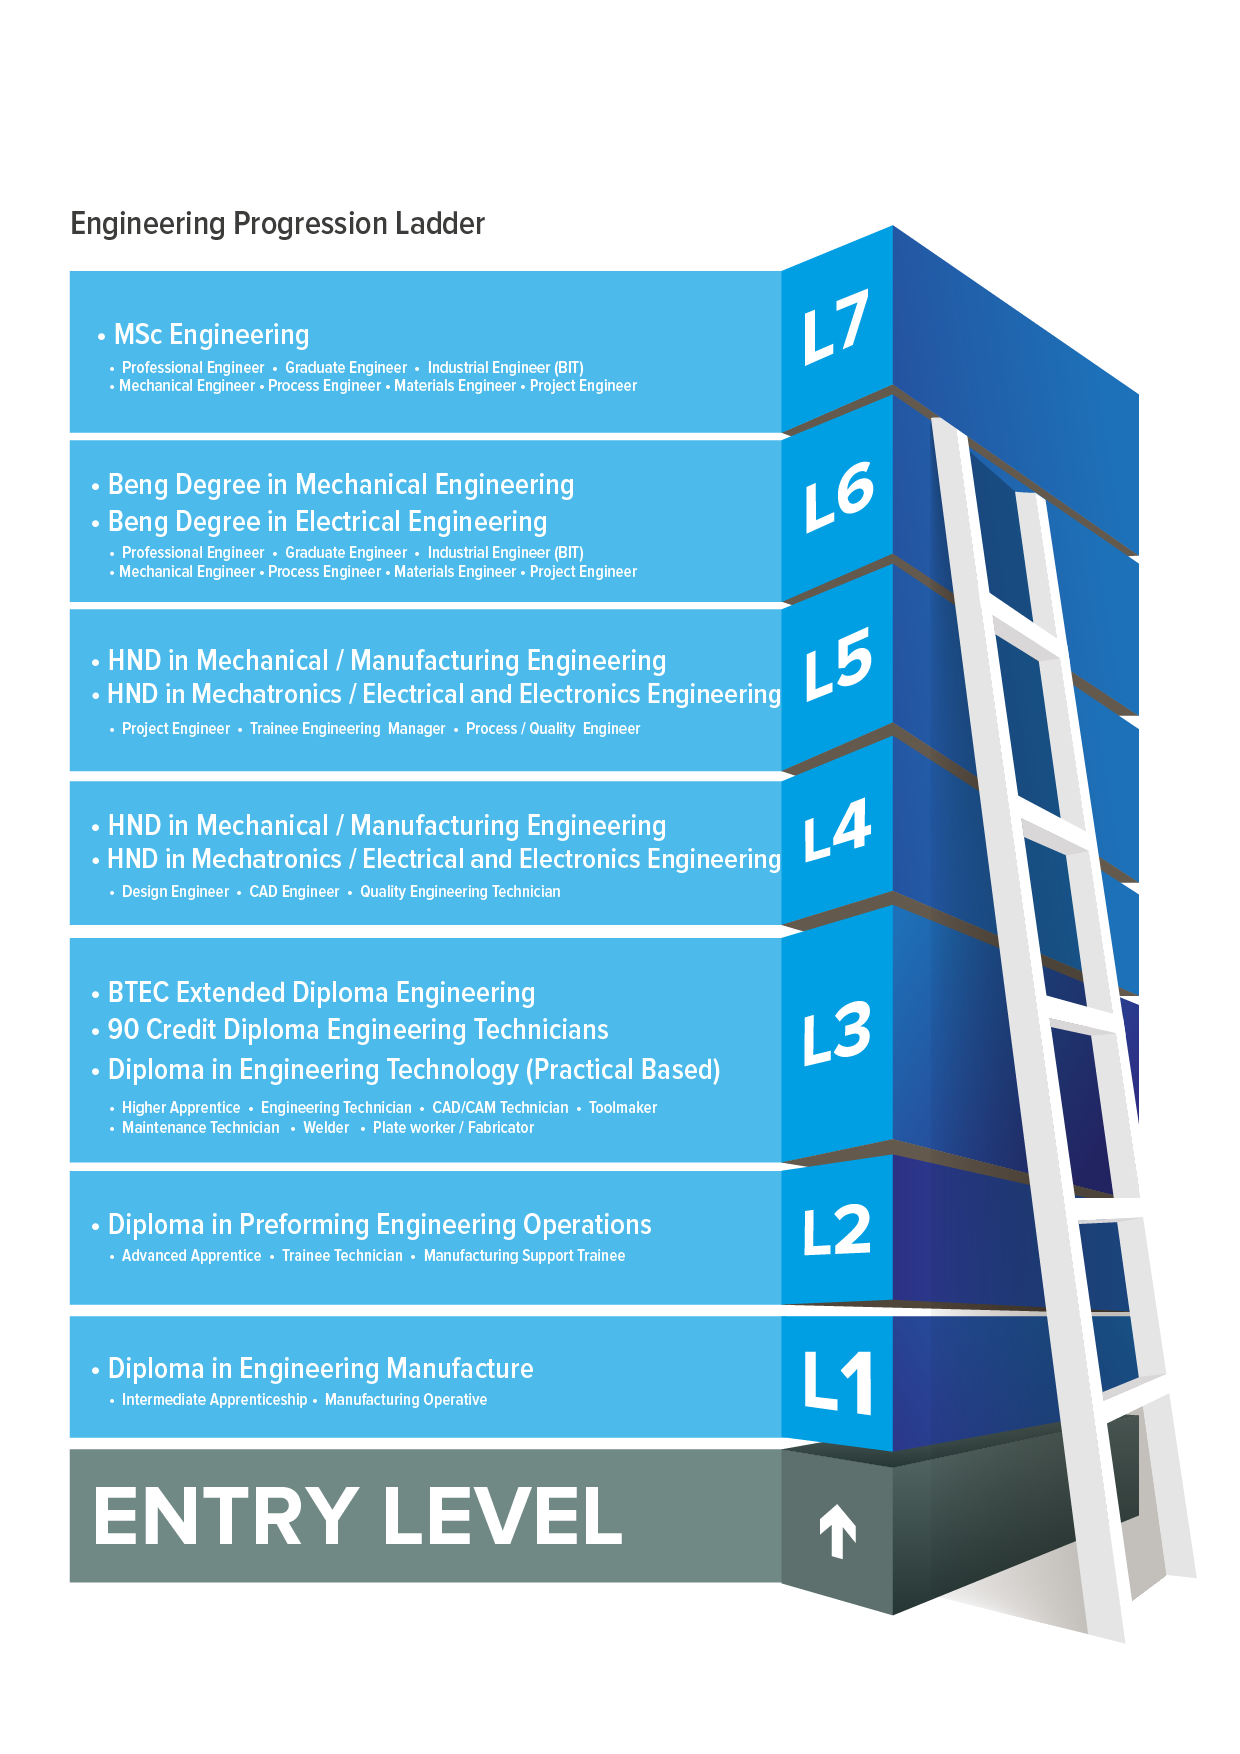 Production drawing professional engineering. Darlington college progression ladder